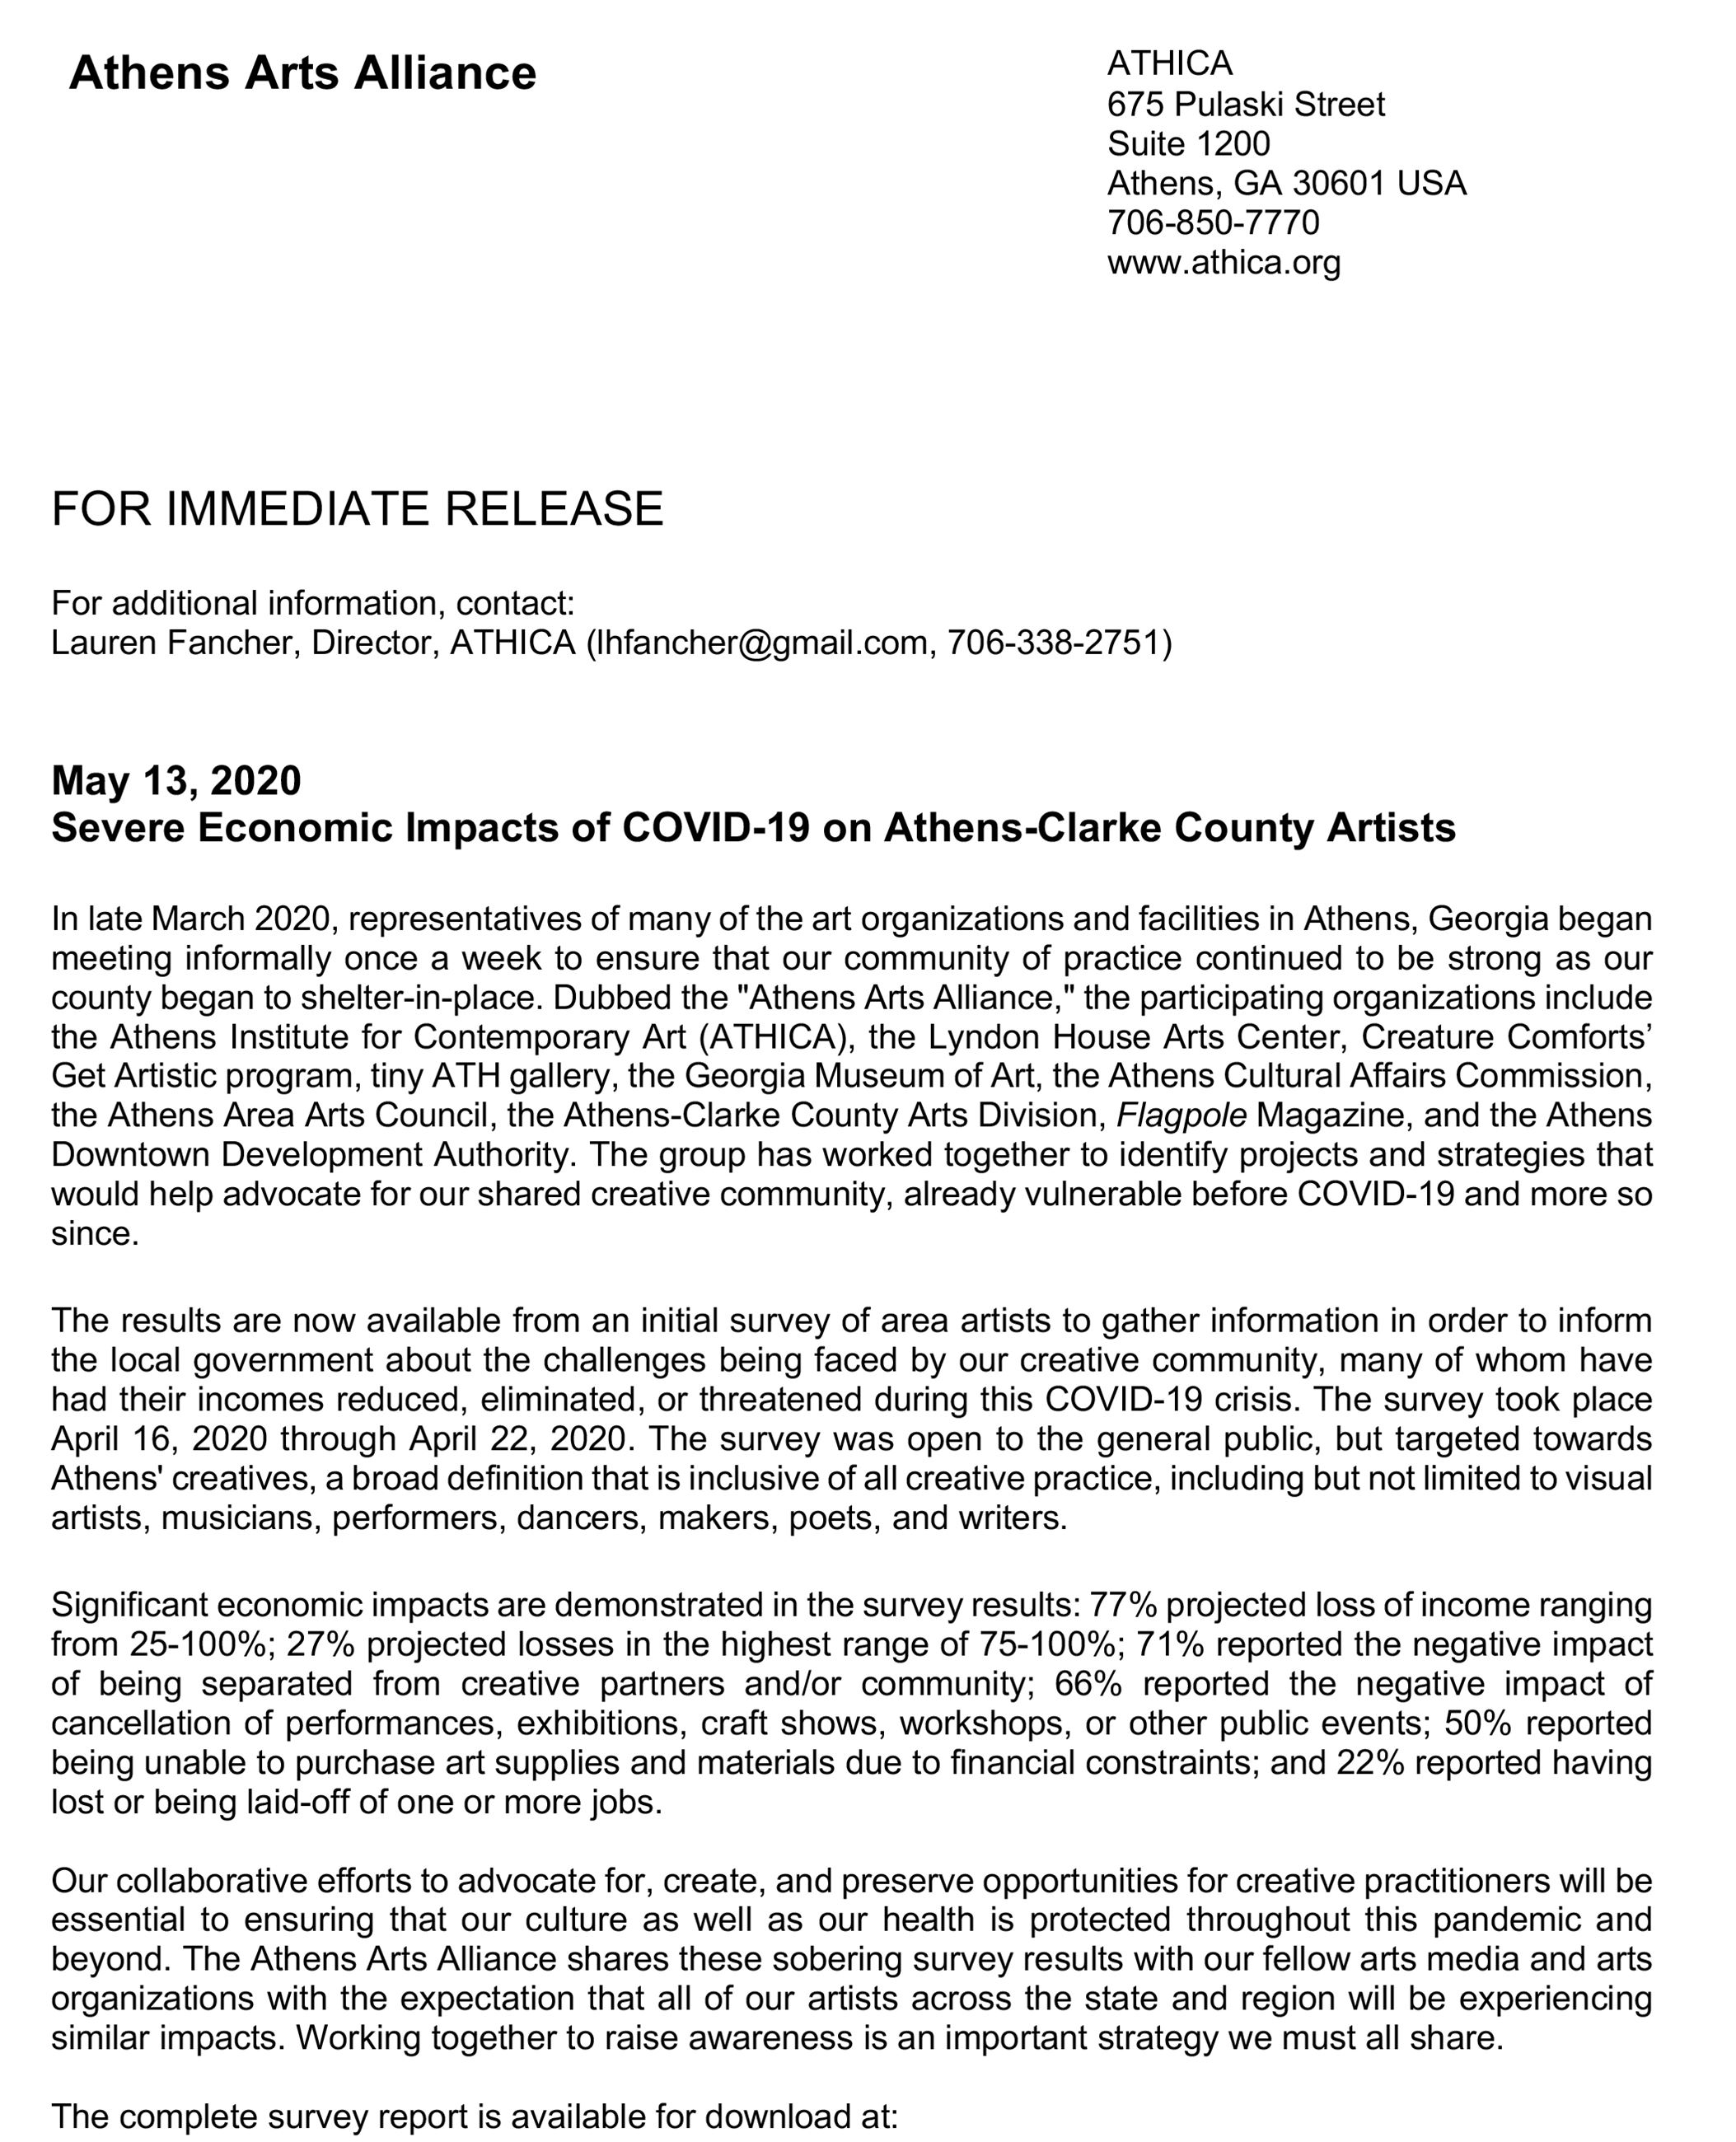 ATHENSARTSALLIANCE_PressRelease_COVID19ImpactsOnArtists_May2020-2